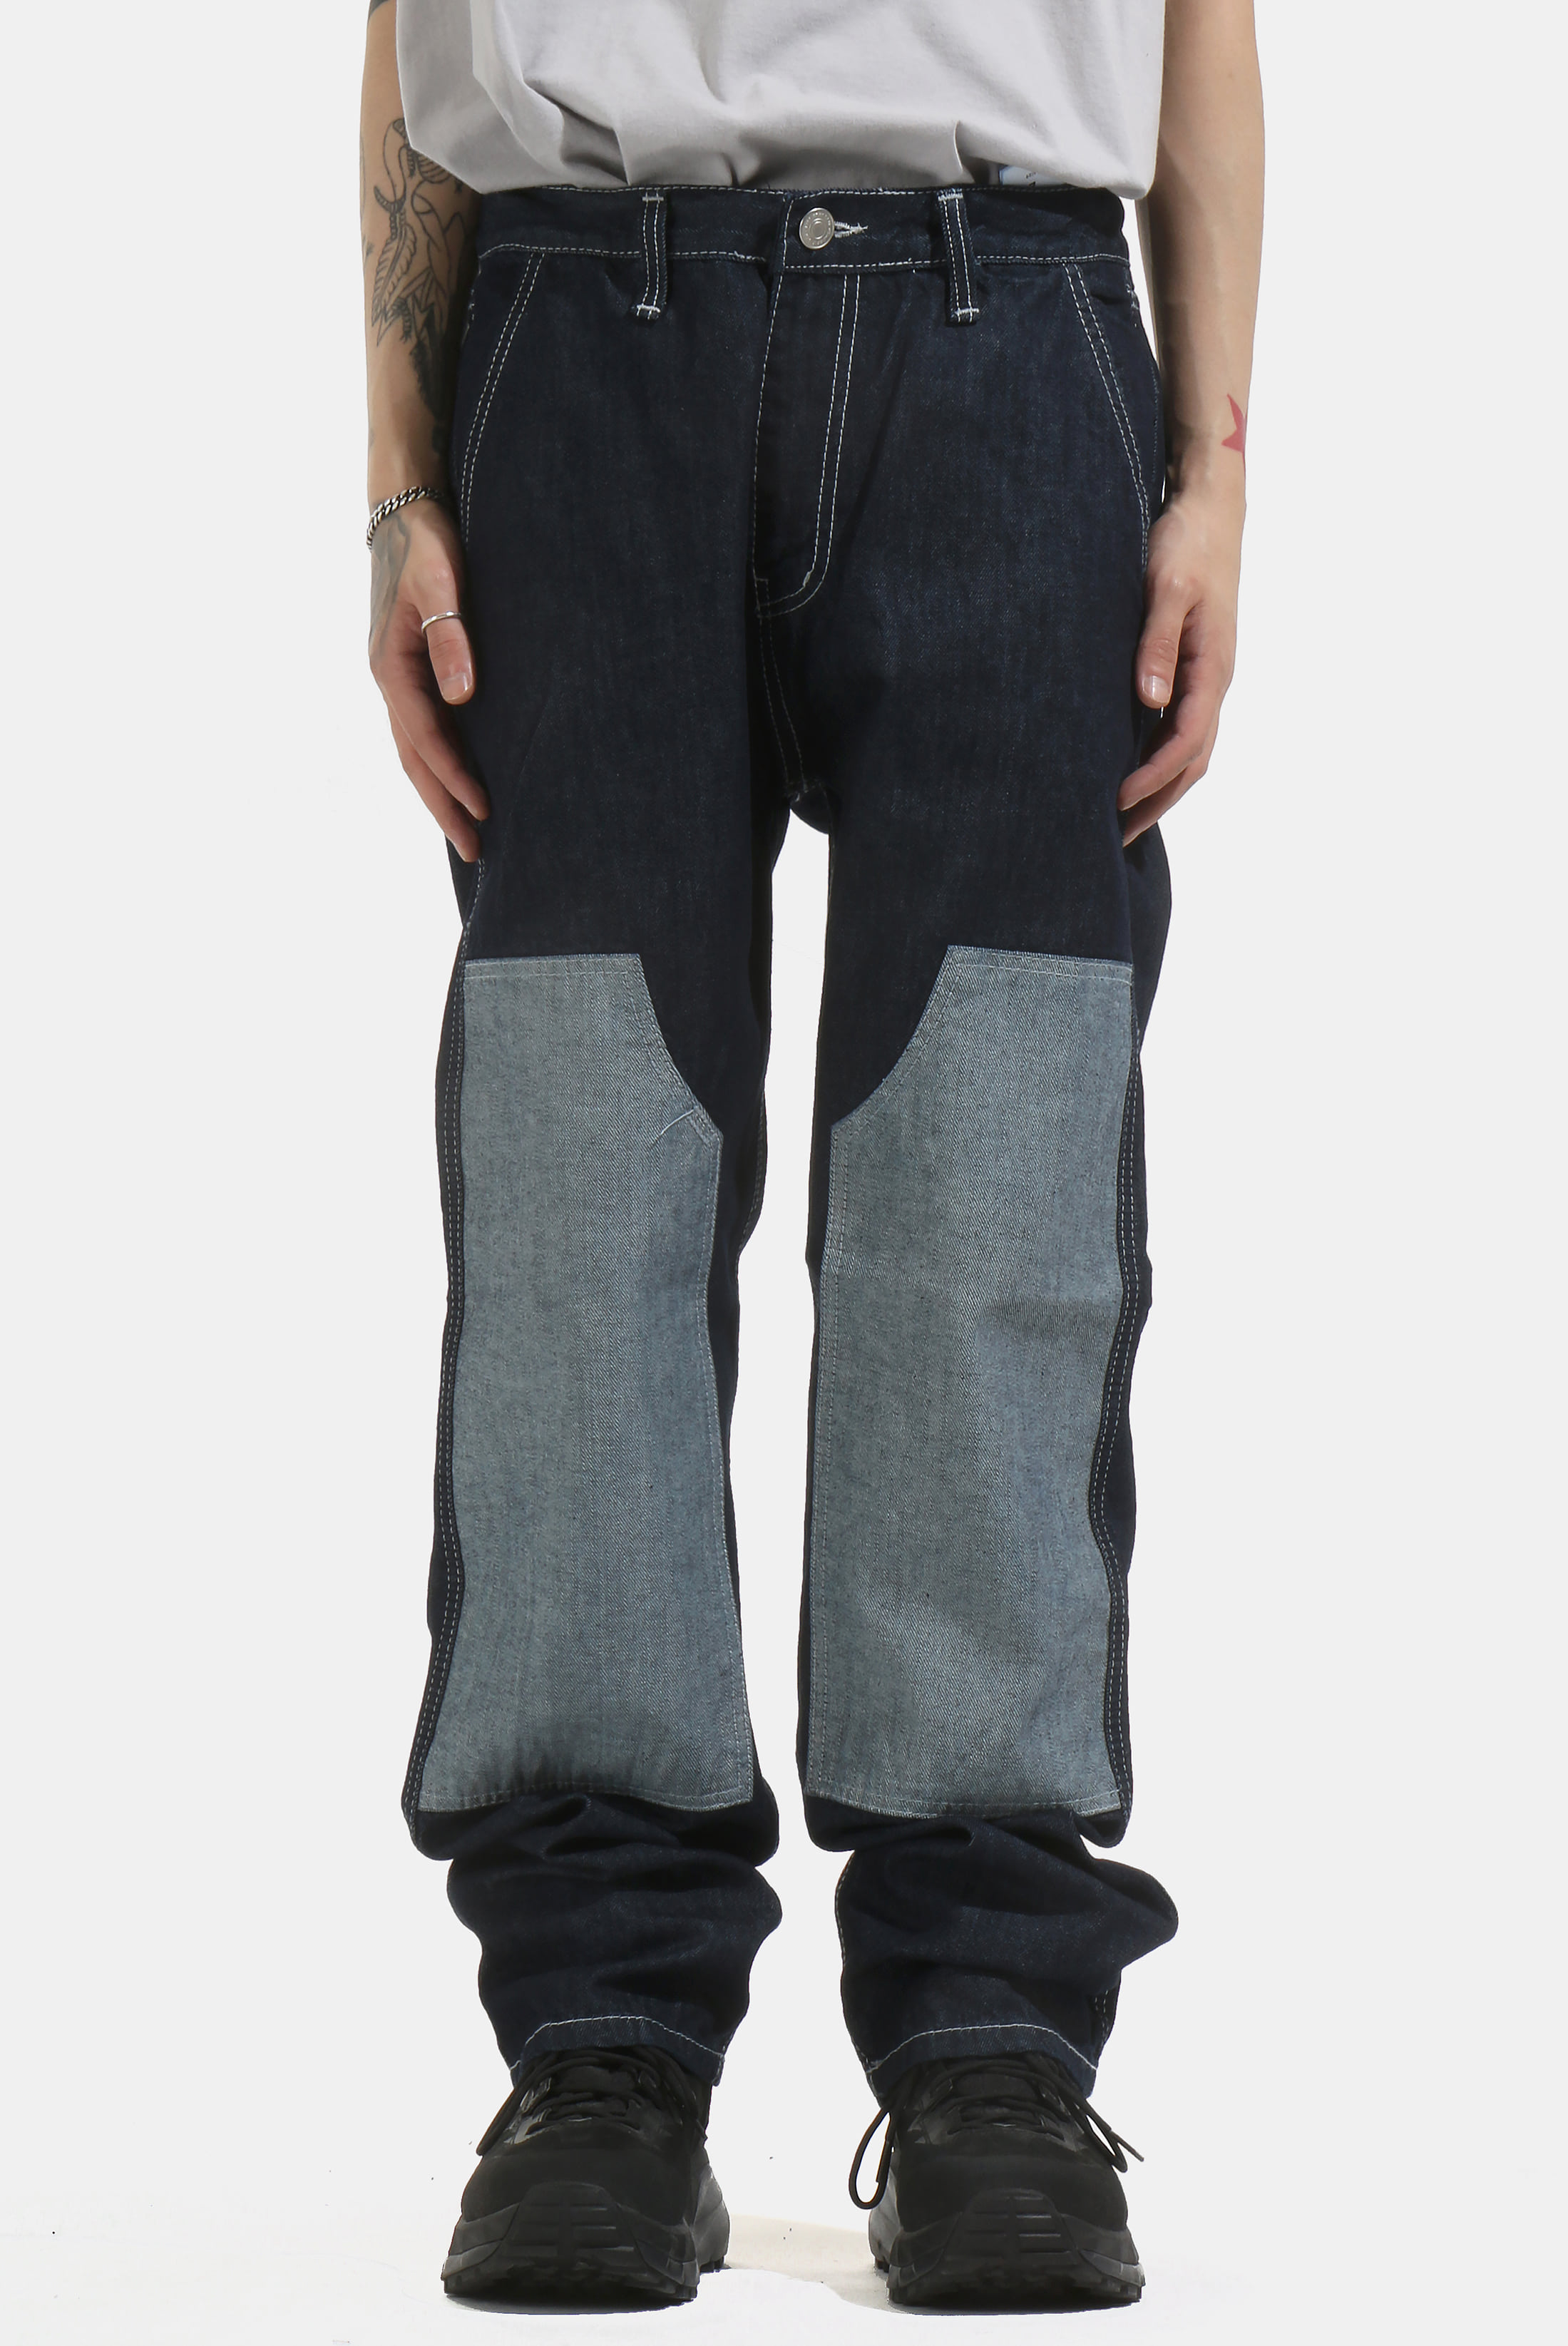 Patched Semi_Wide Pant